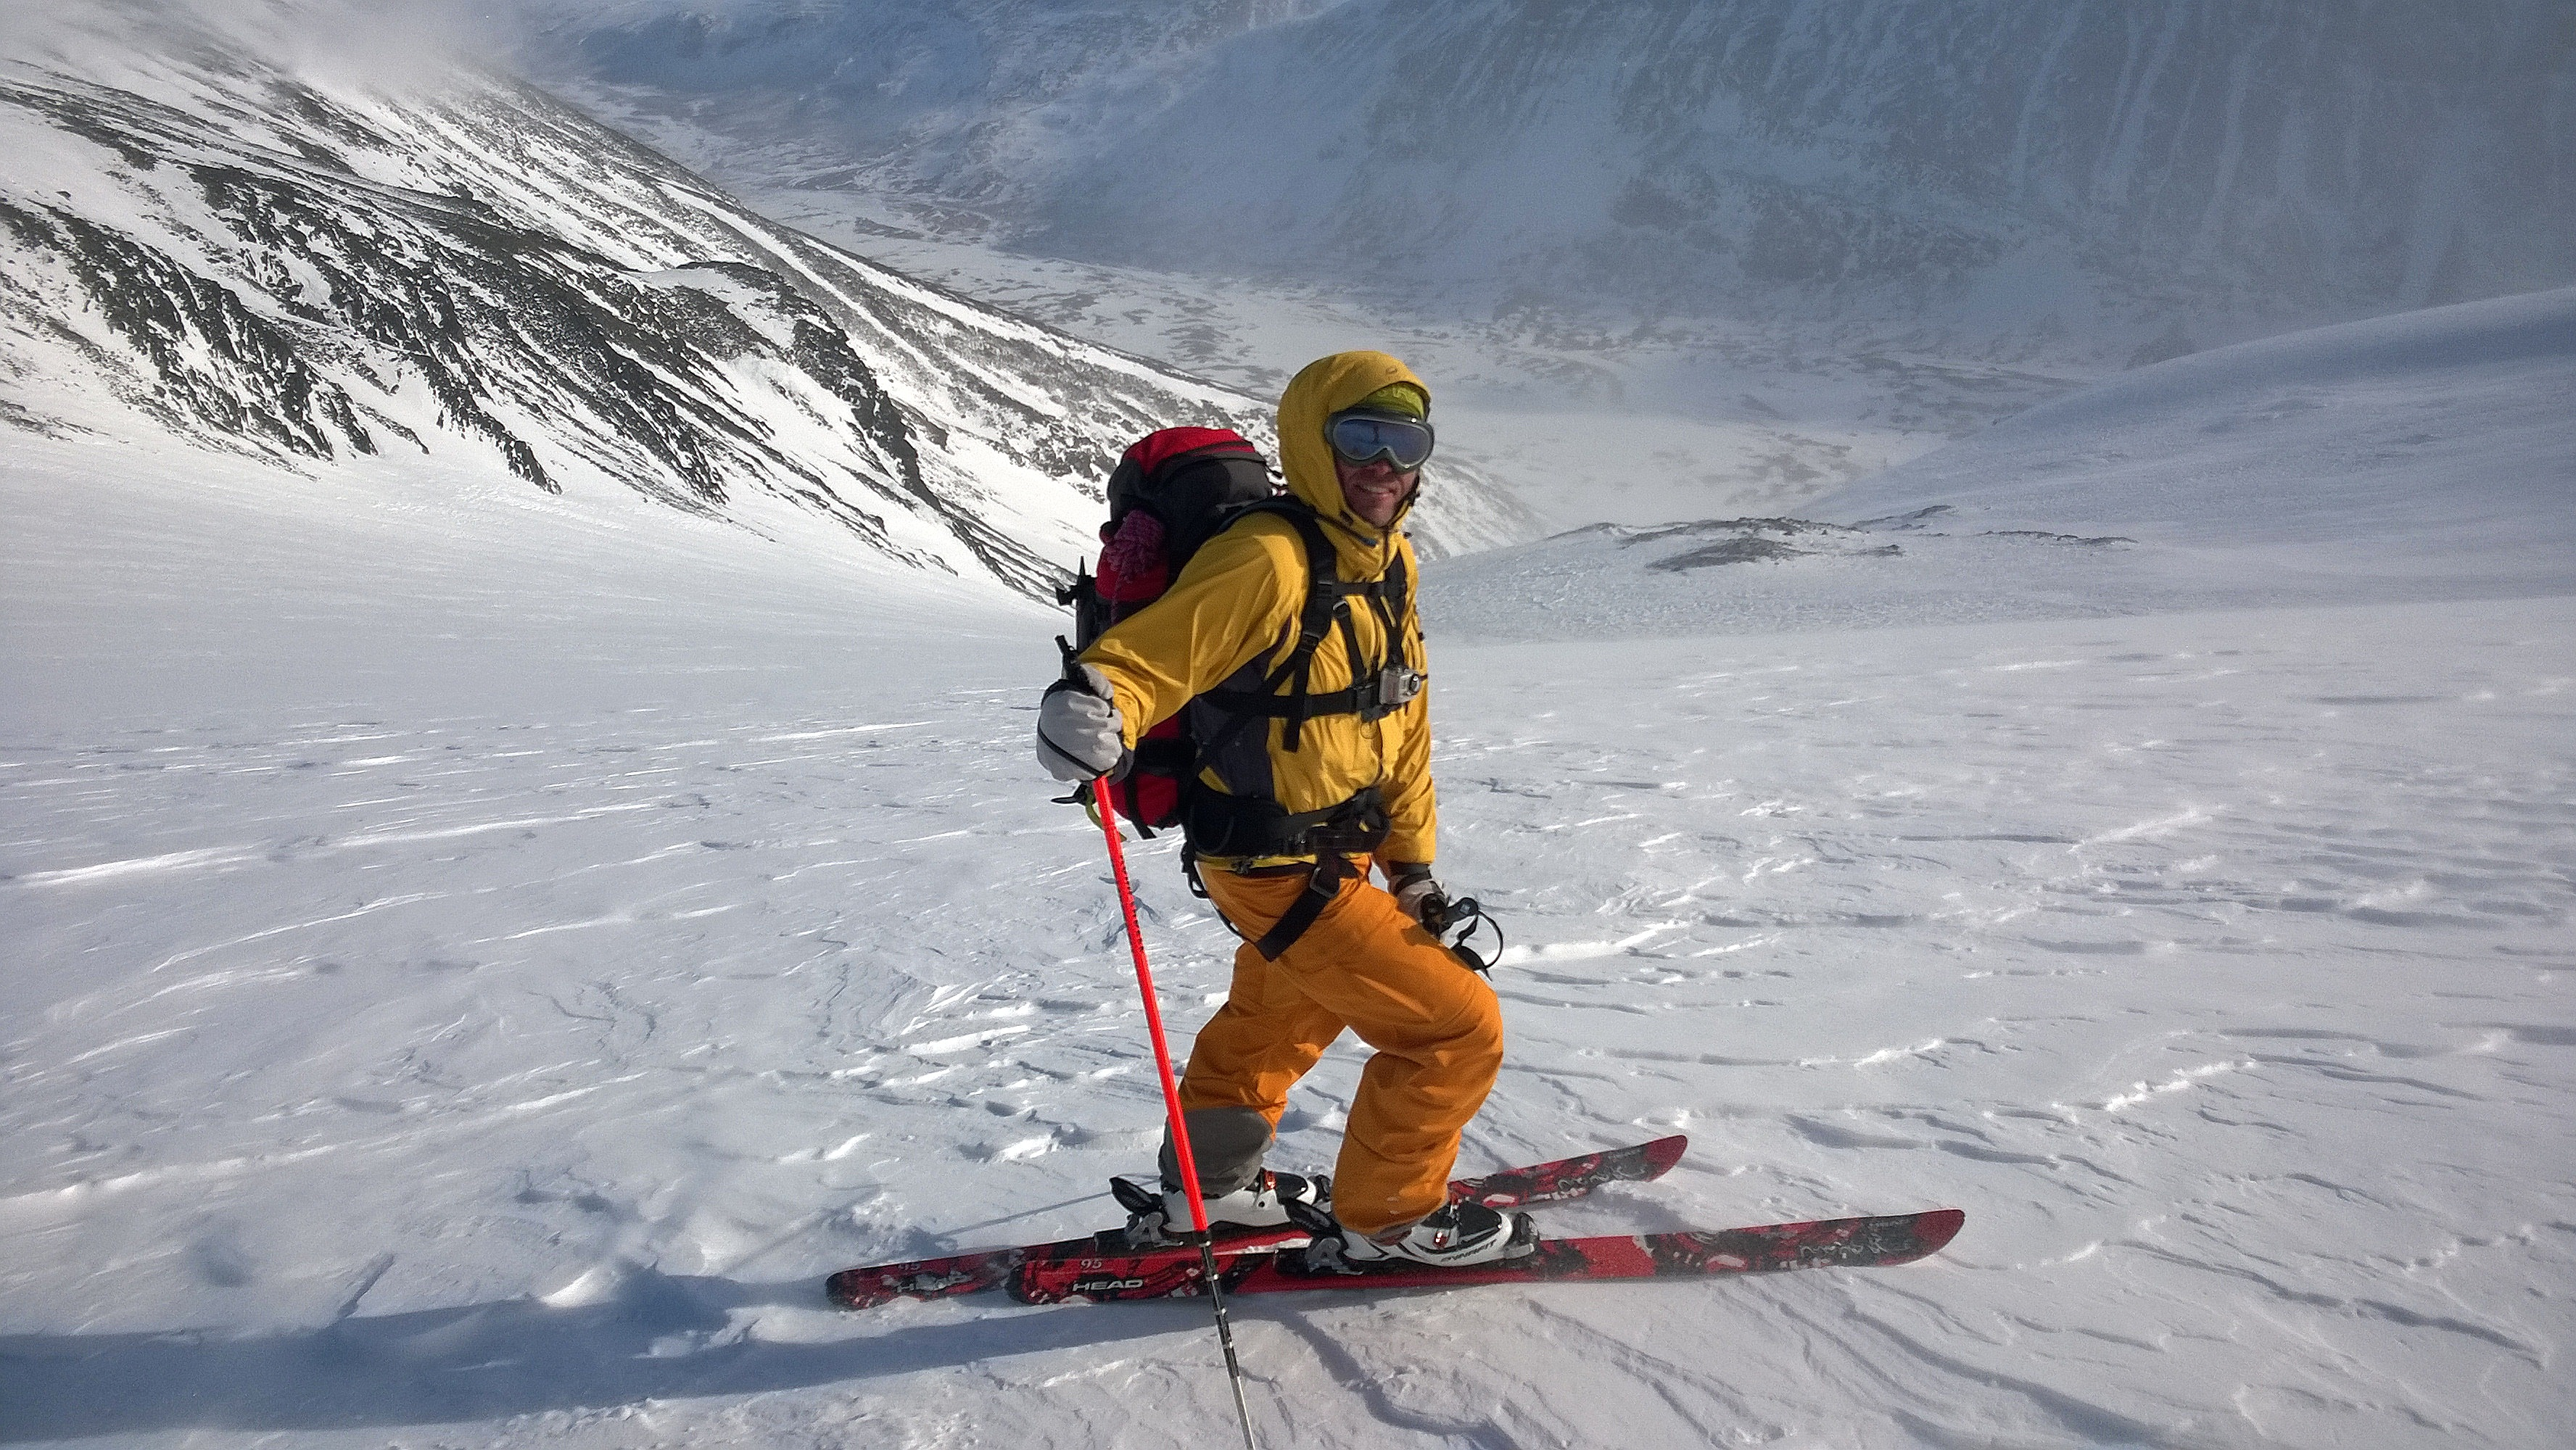 Alpine ski mountaineering!